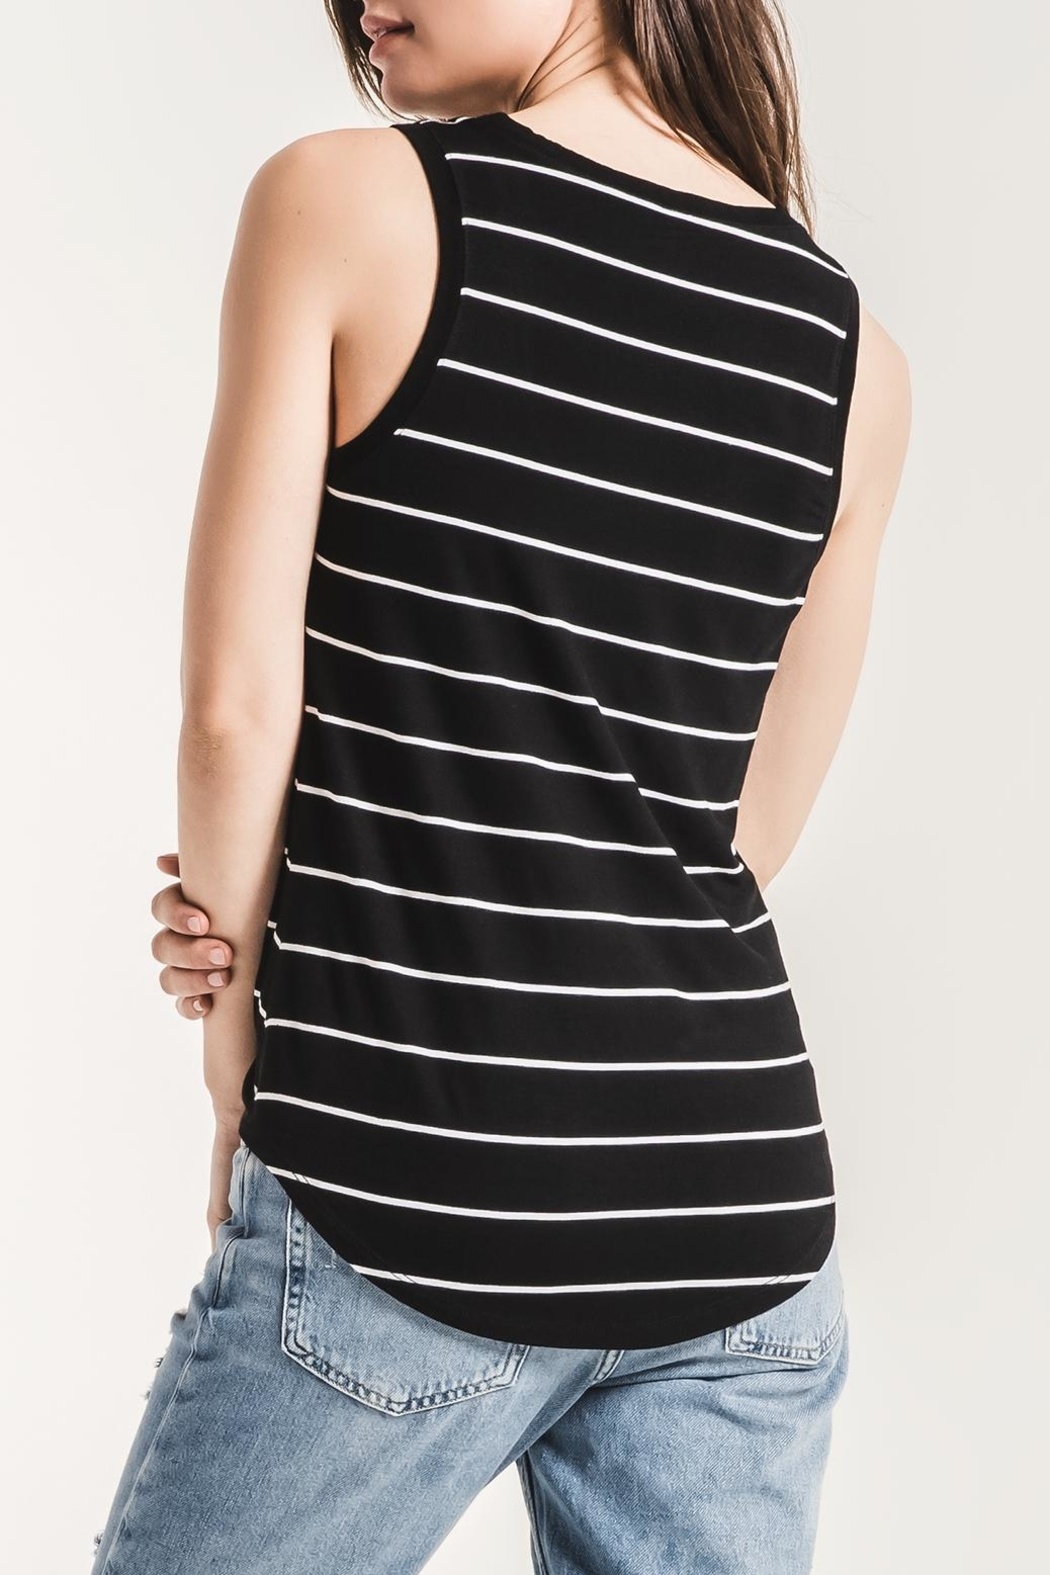 z supply Pencil Striped Tank - Front Full Image